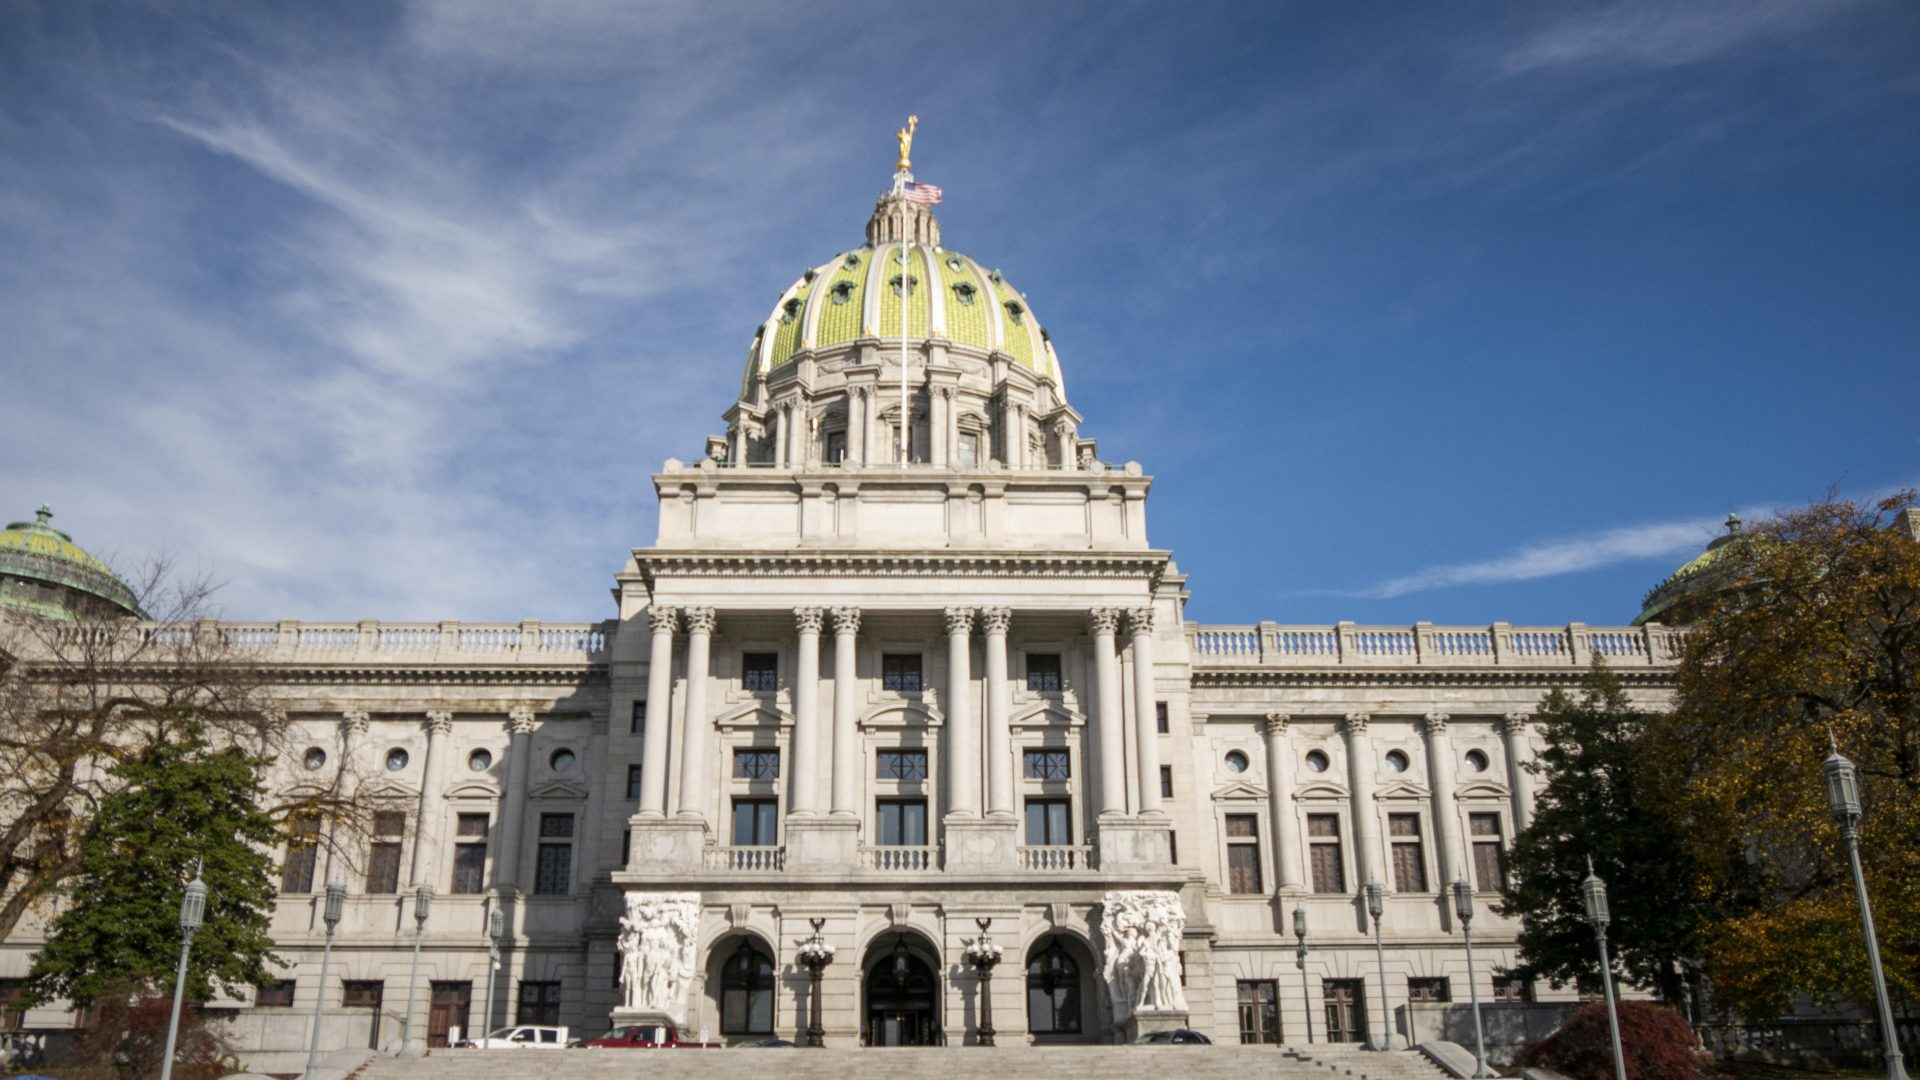 The Pennsylvania state Capitol.